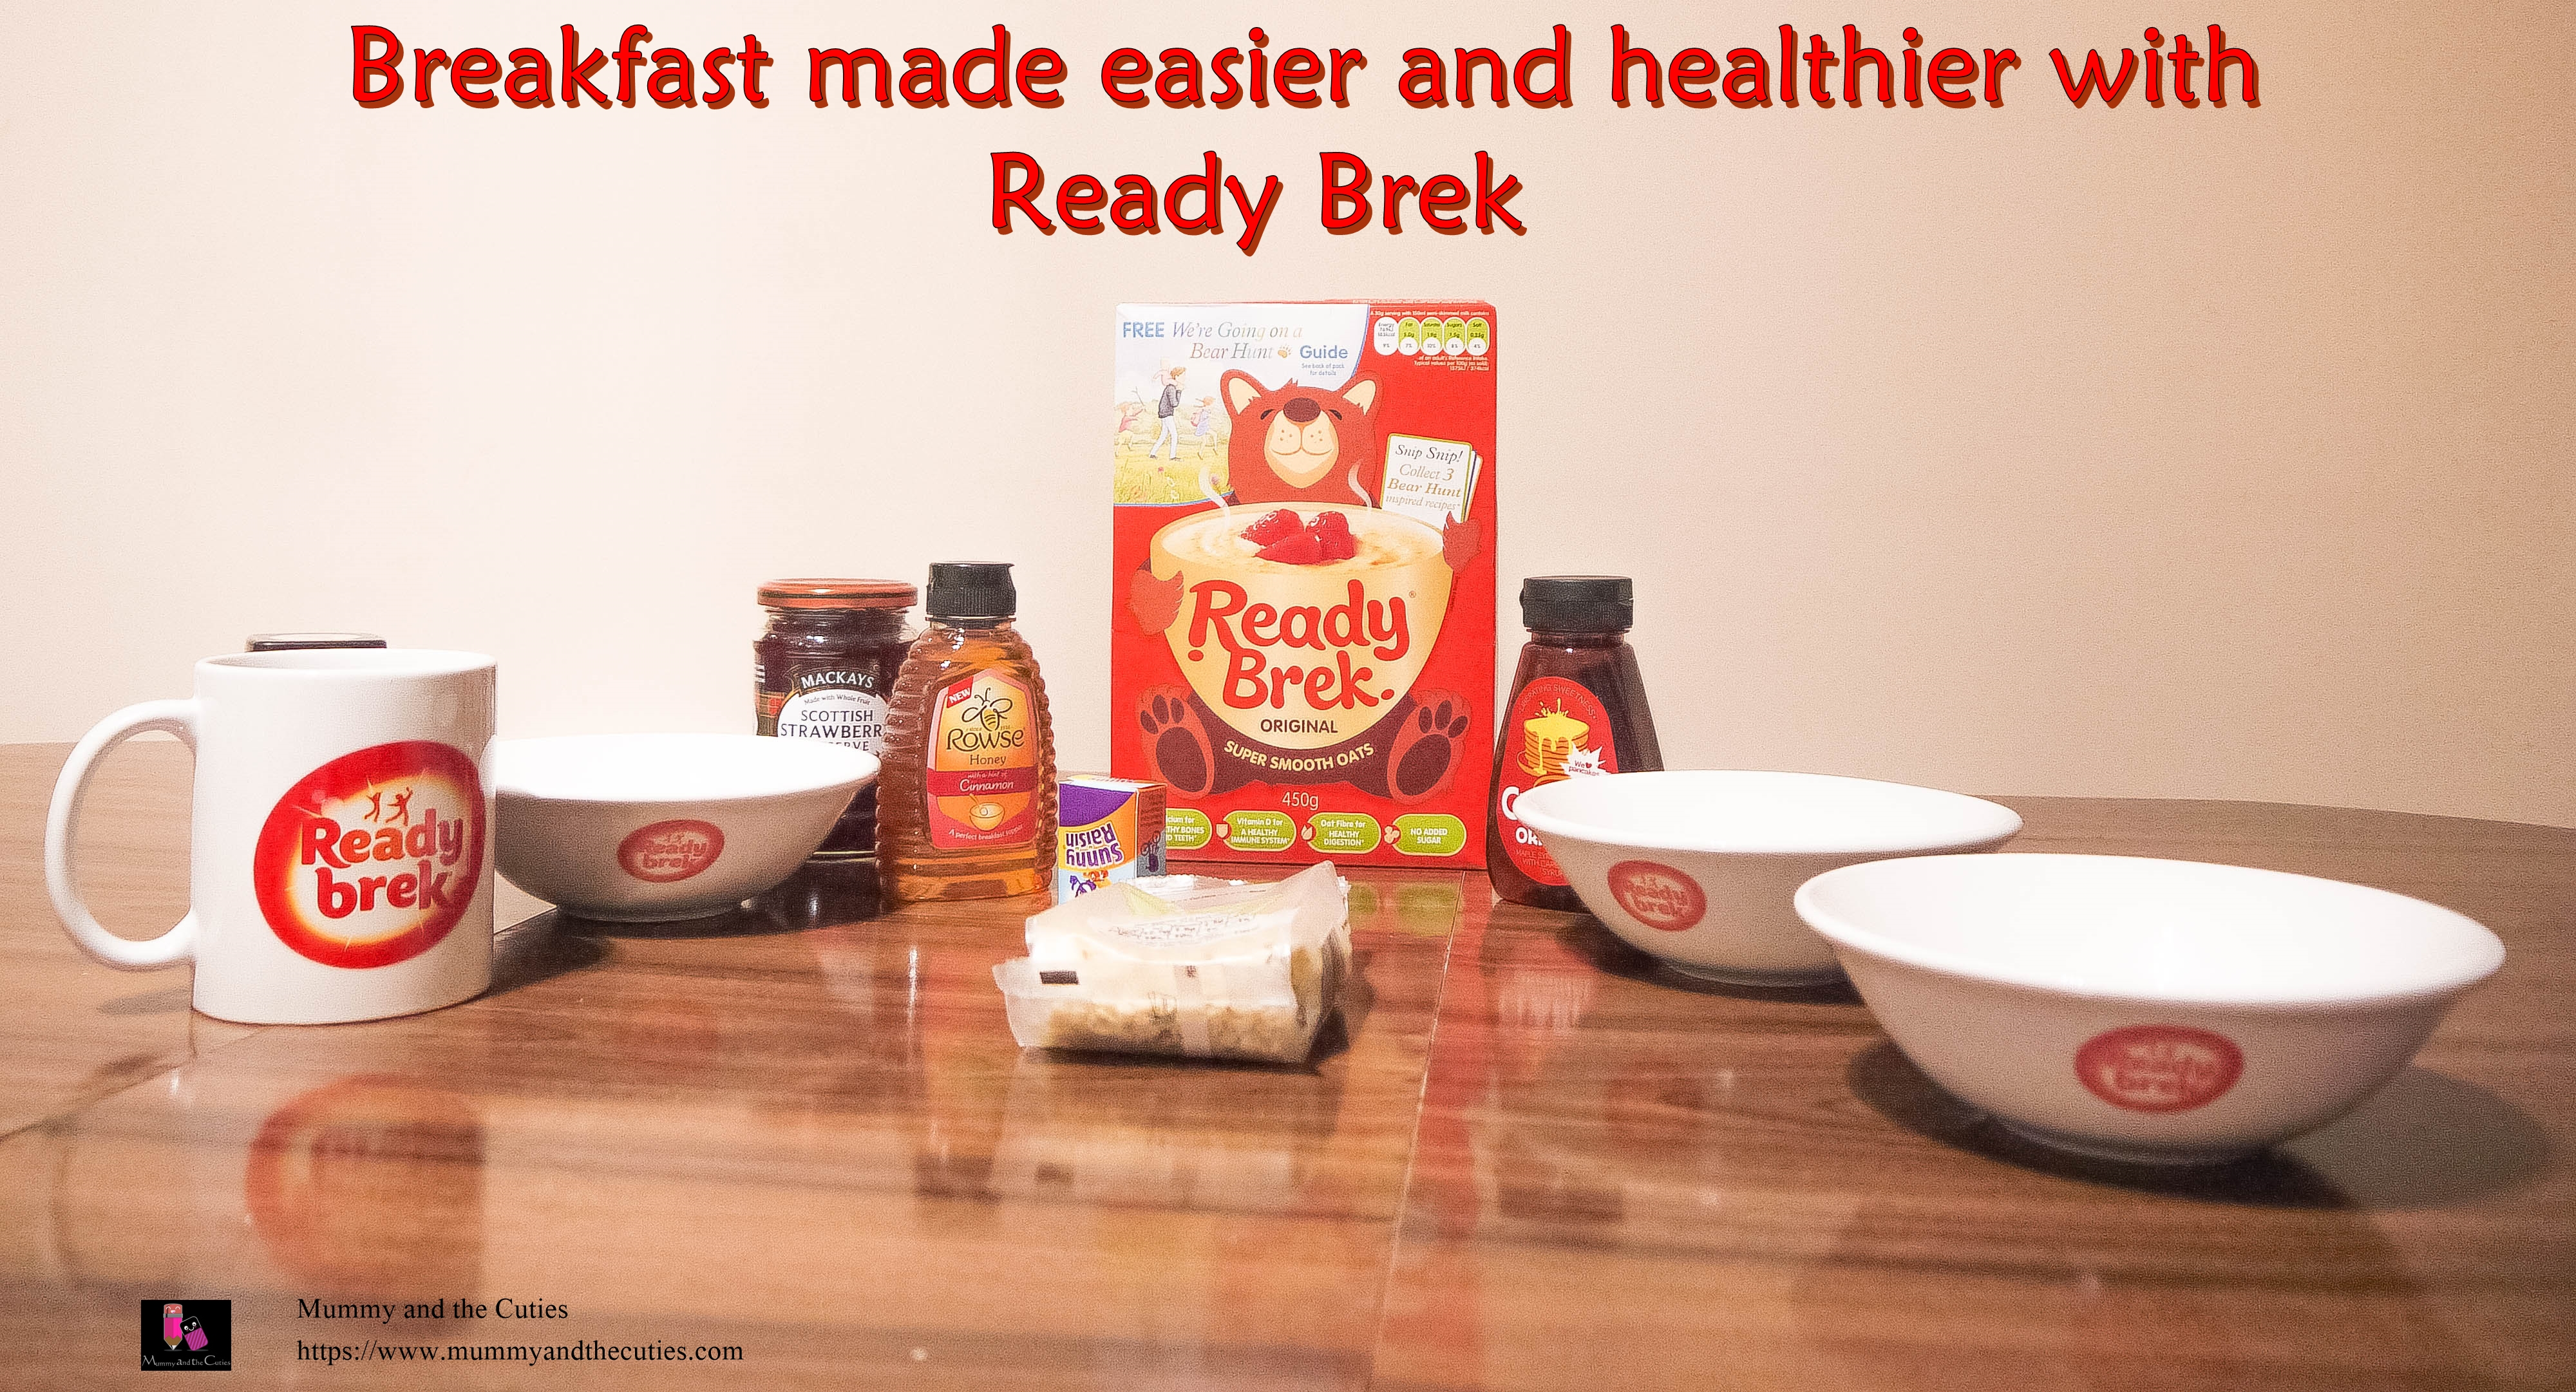 Ready Brek – Breakfast made easier and tastier